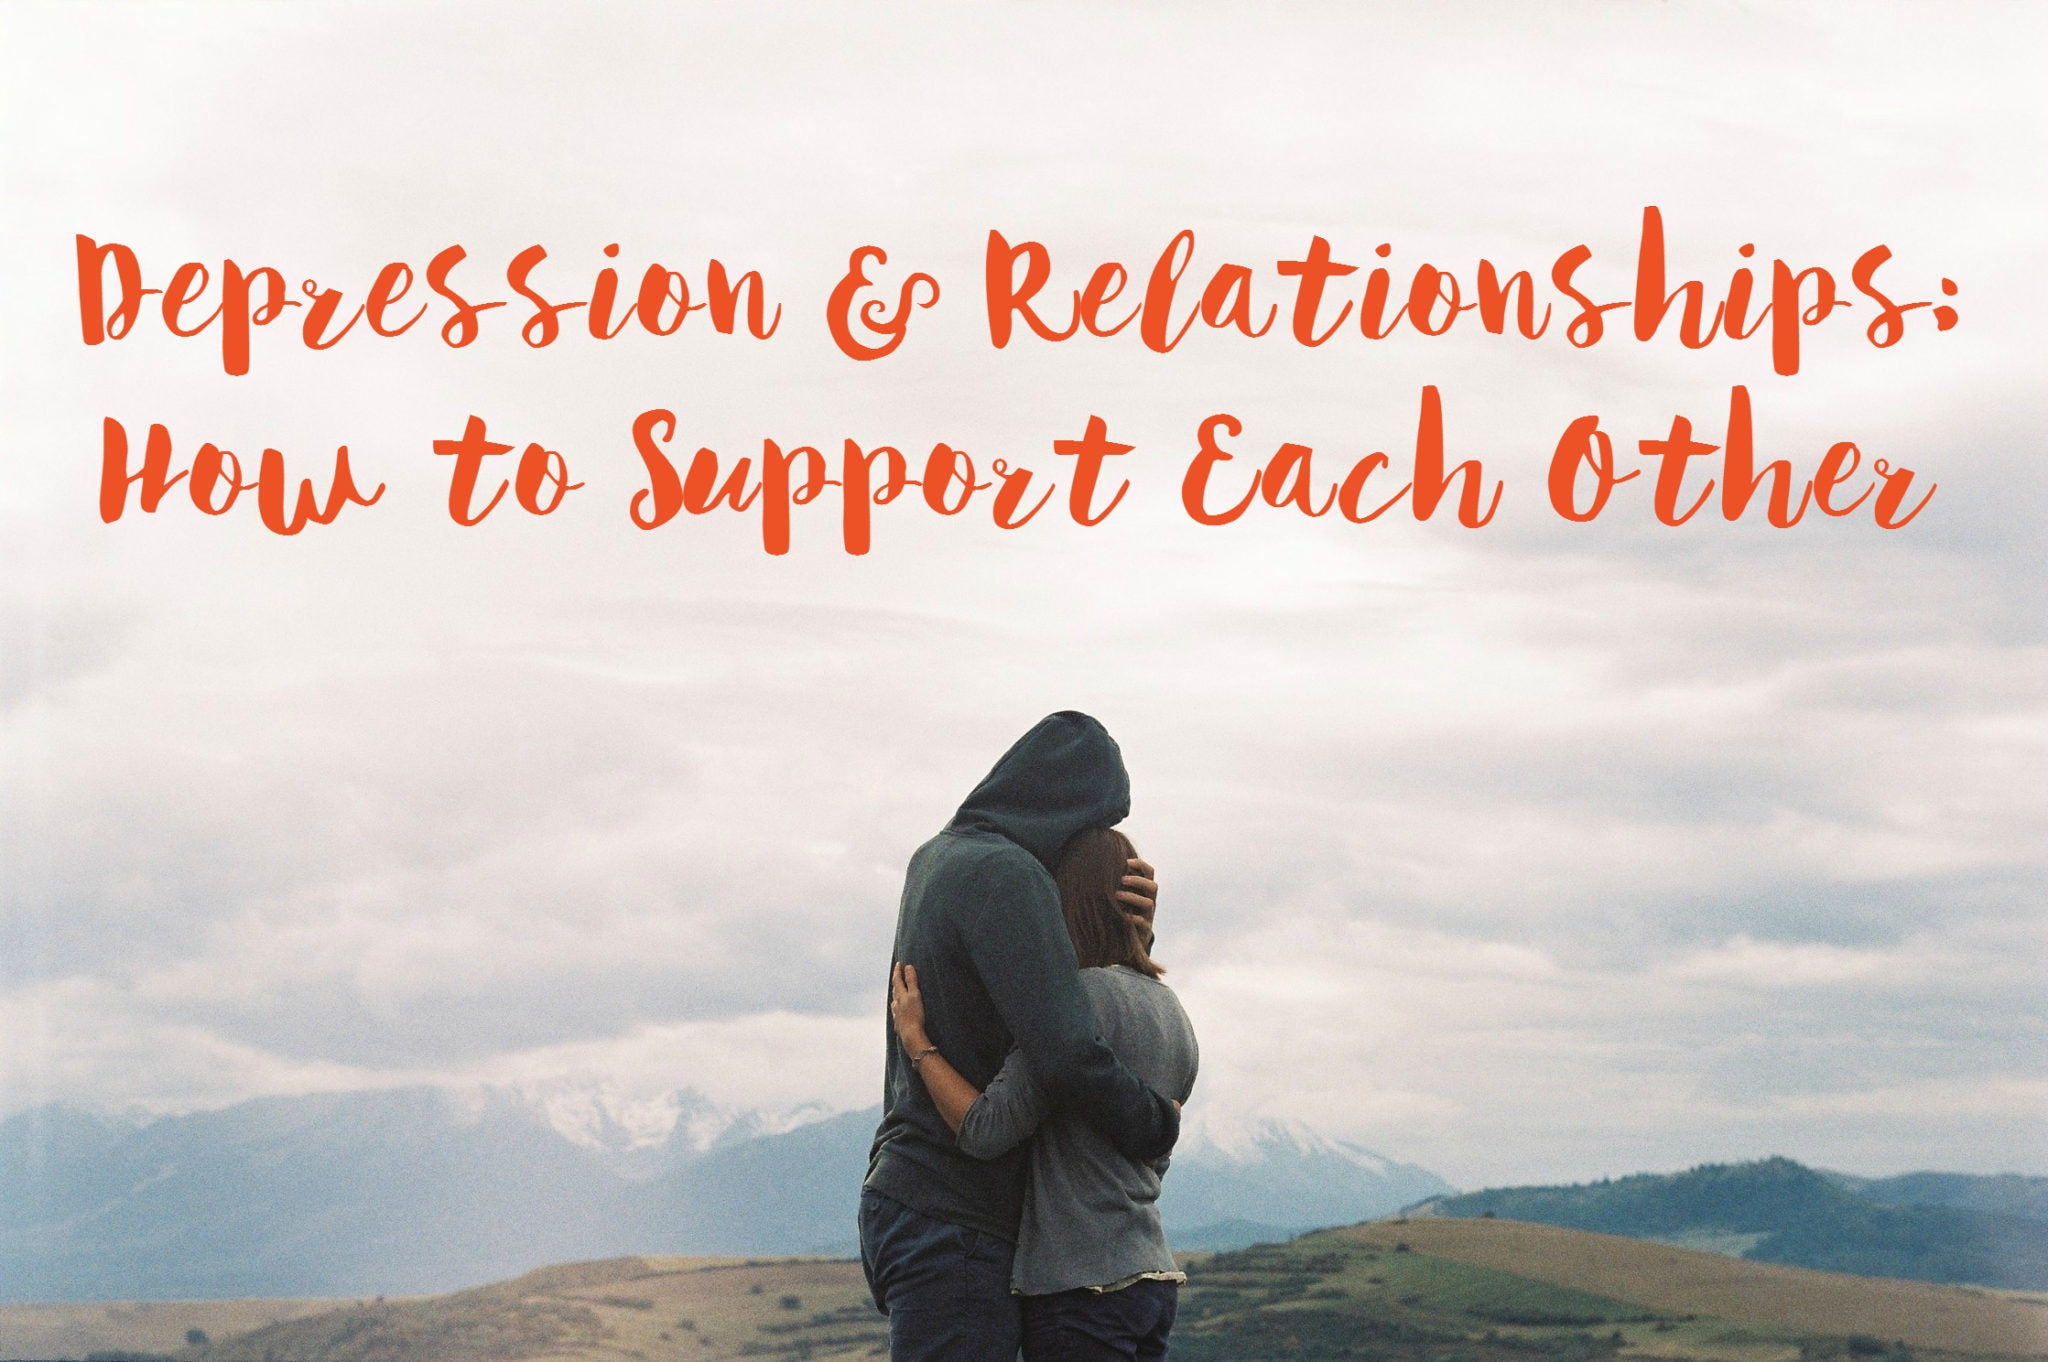 Depression & Relationships How to support each other